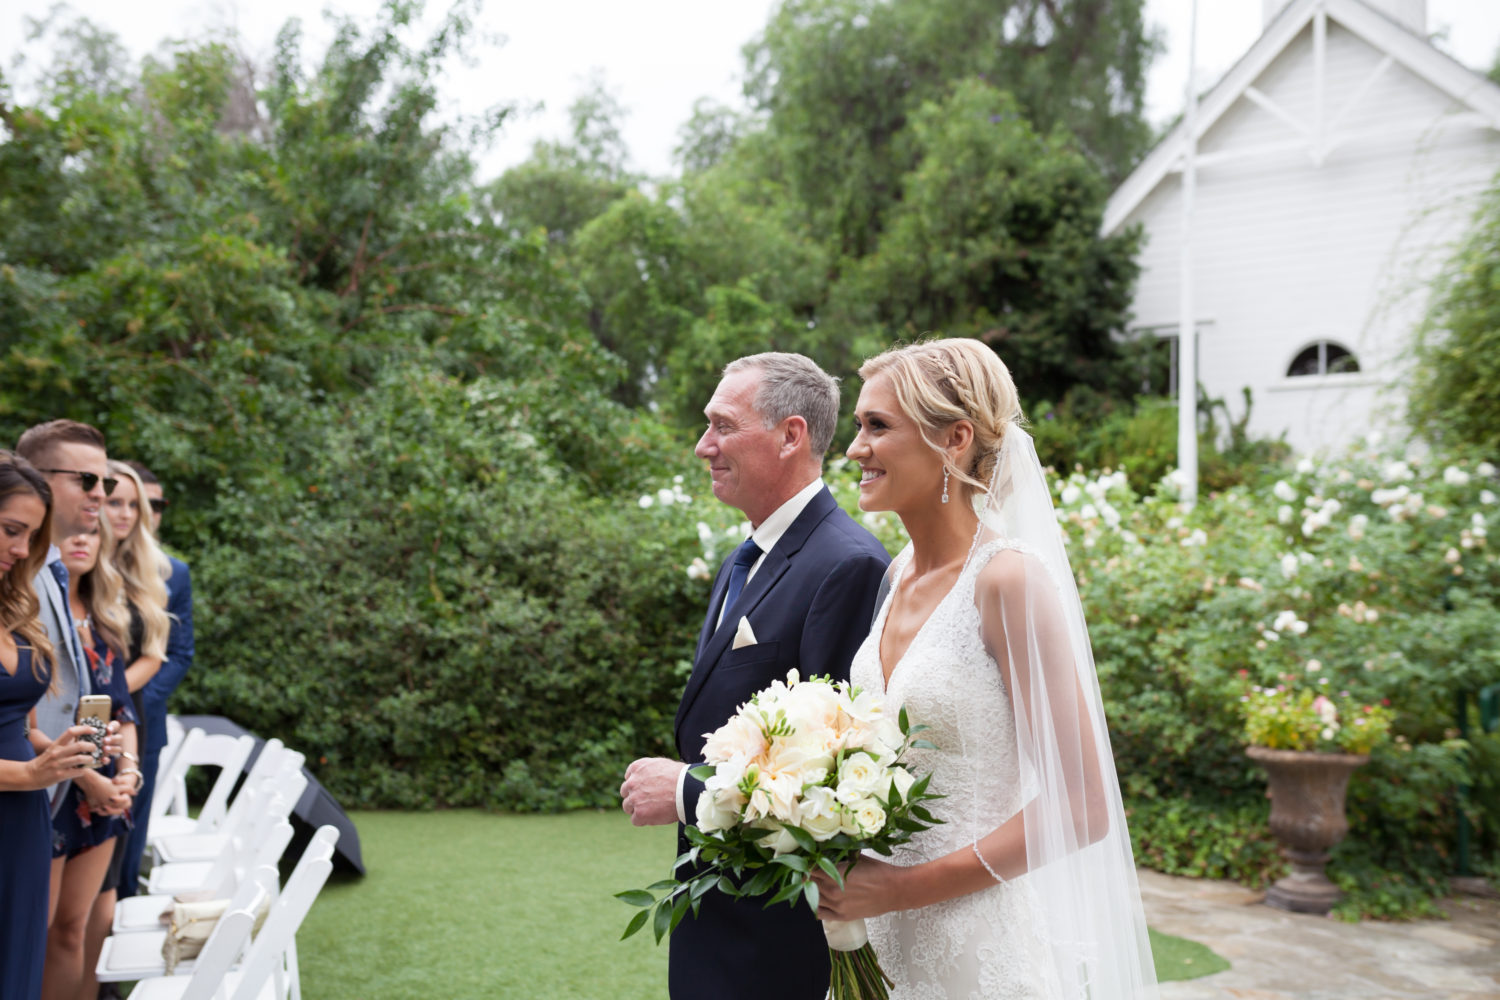 Dad and Bride walk the Aisle